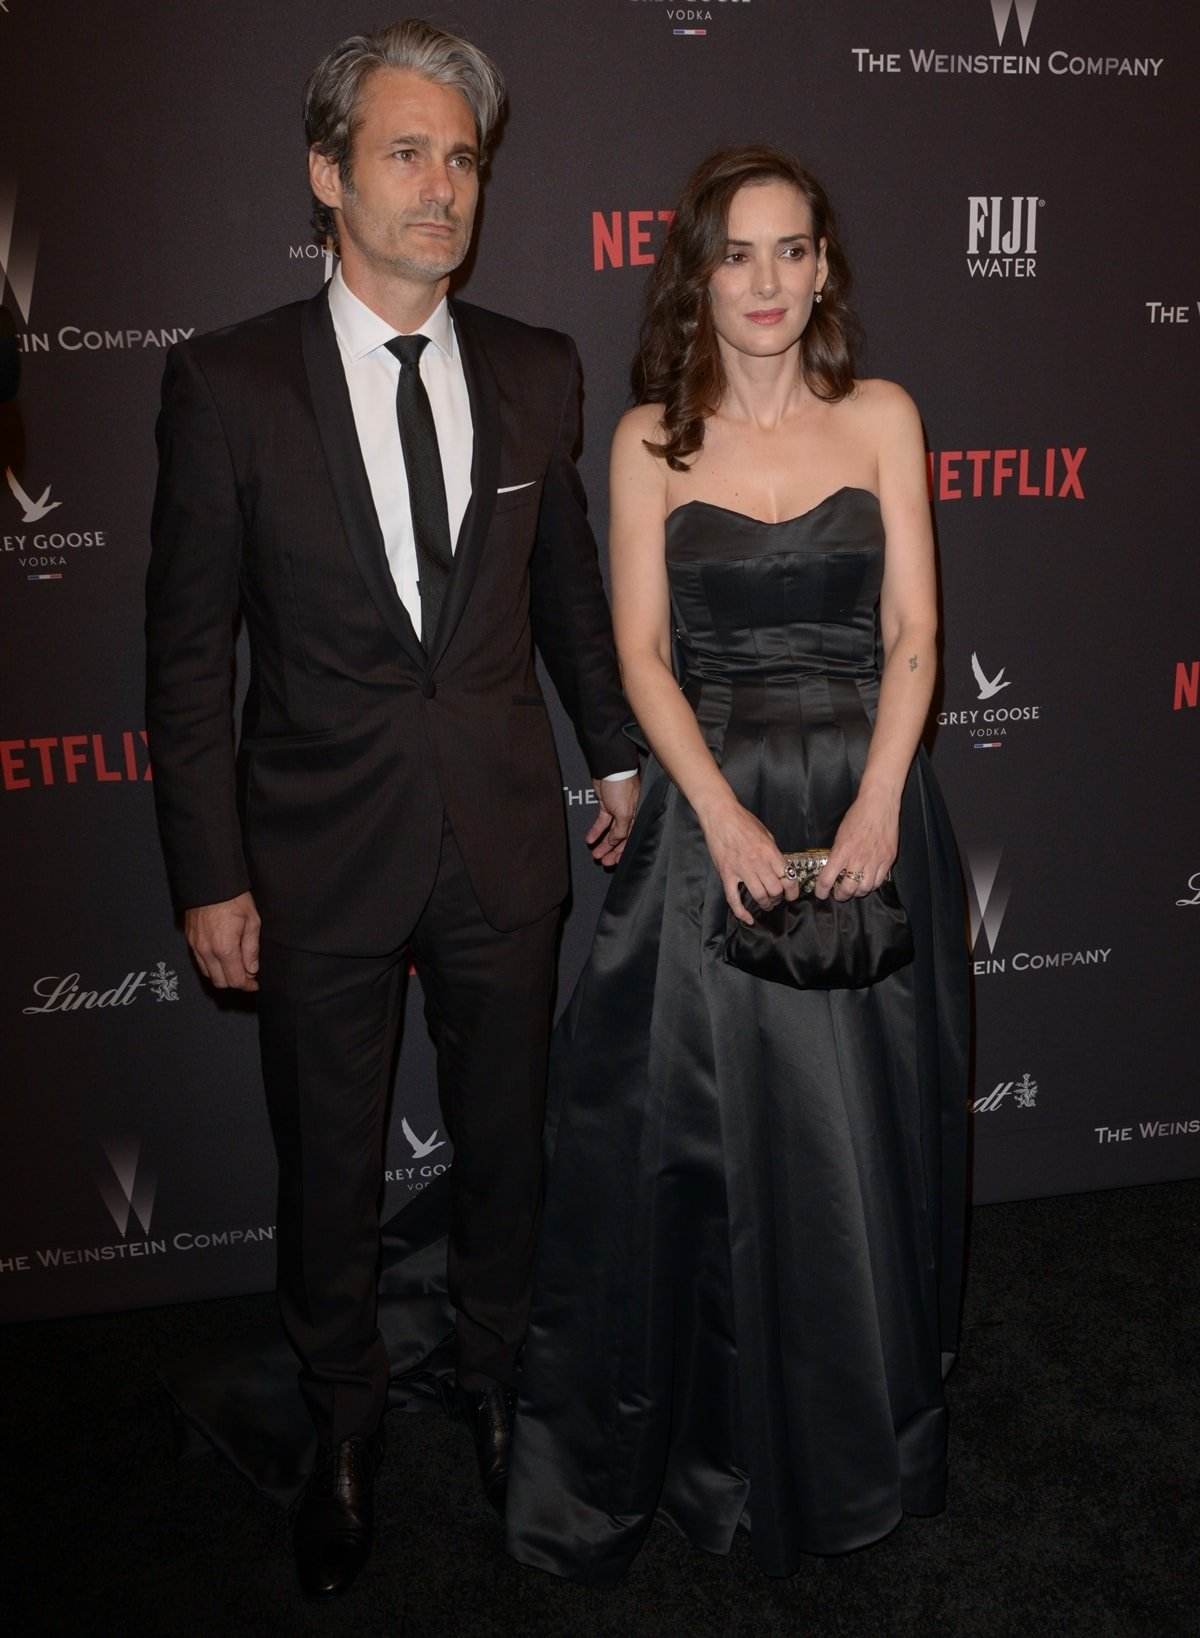 Winona Ryder and her longtime boyfriend Scott Mackinlay Hahn prefer not to share details about their relationship